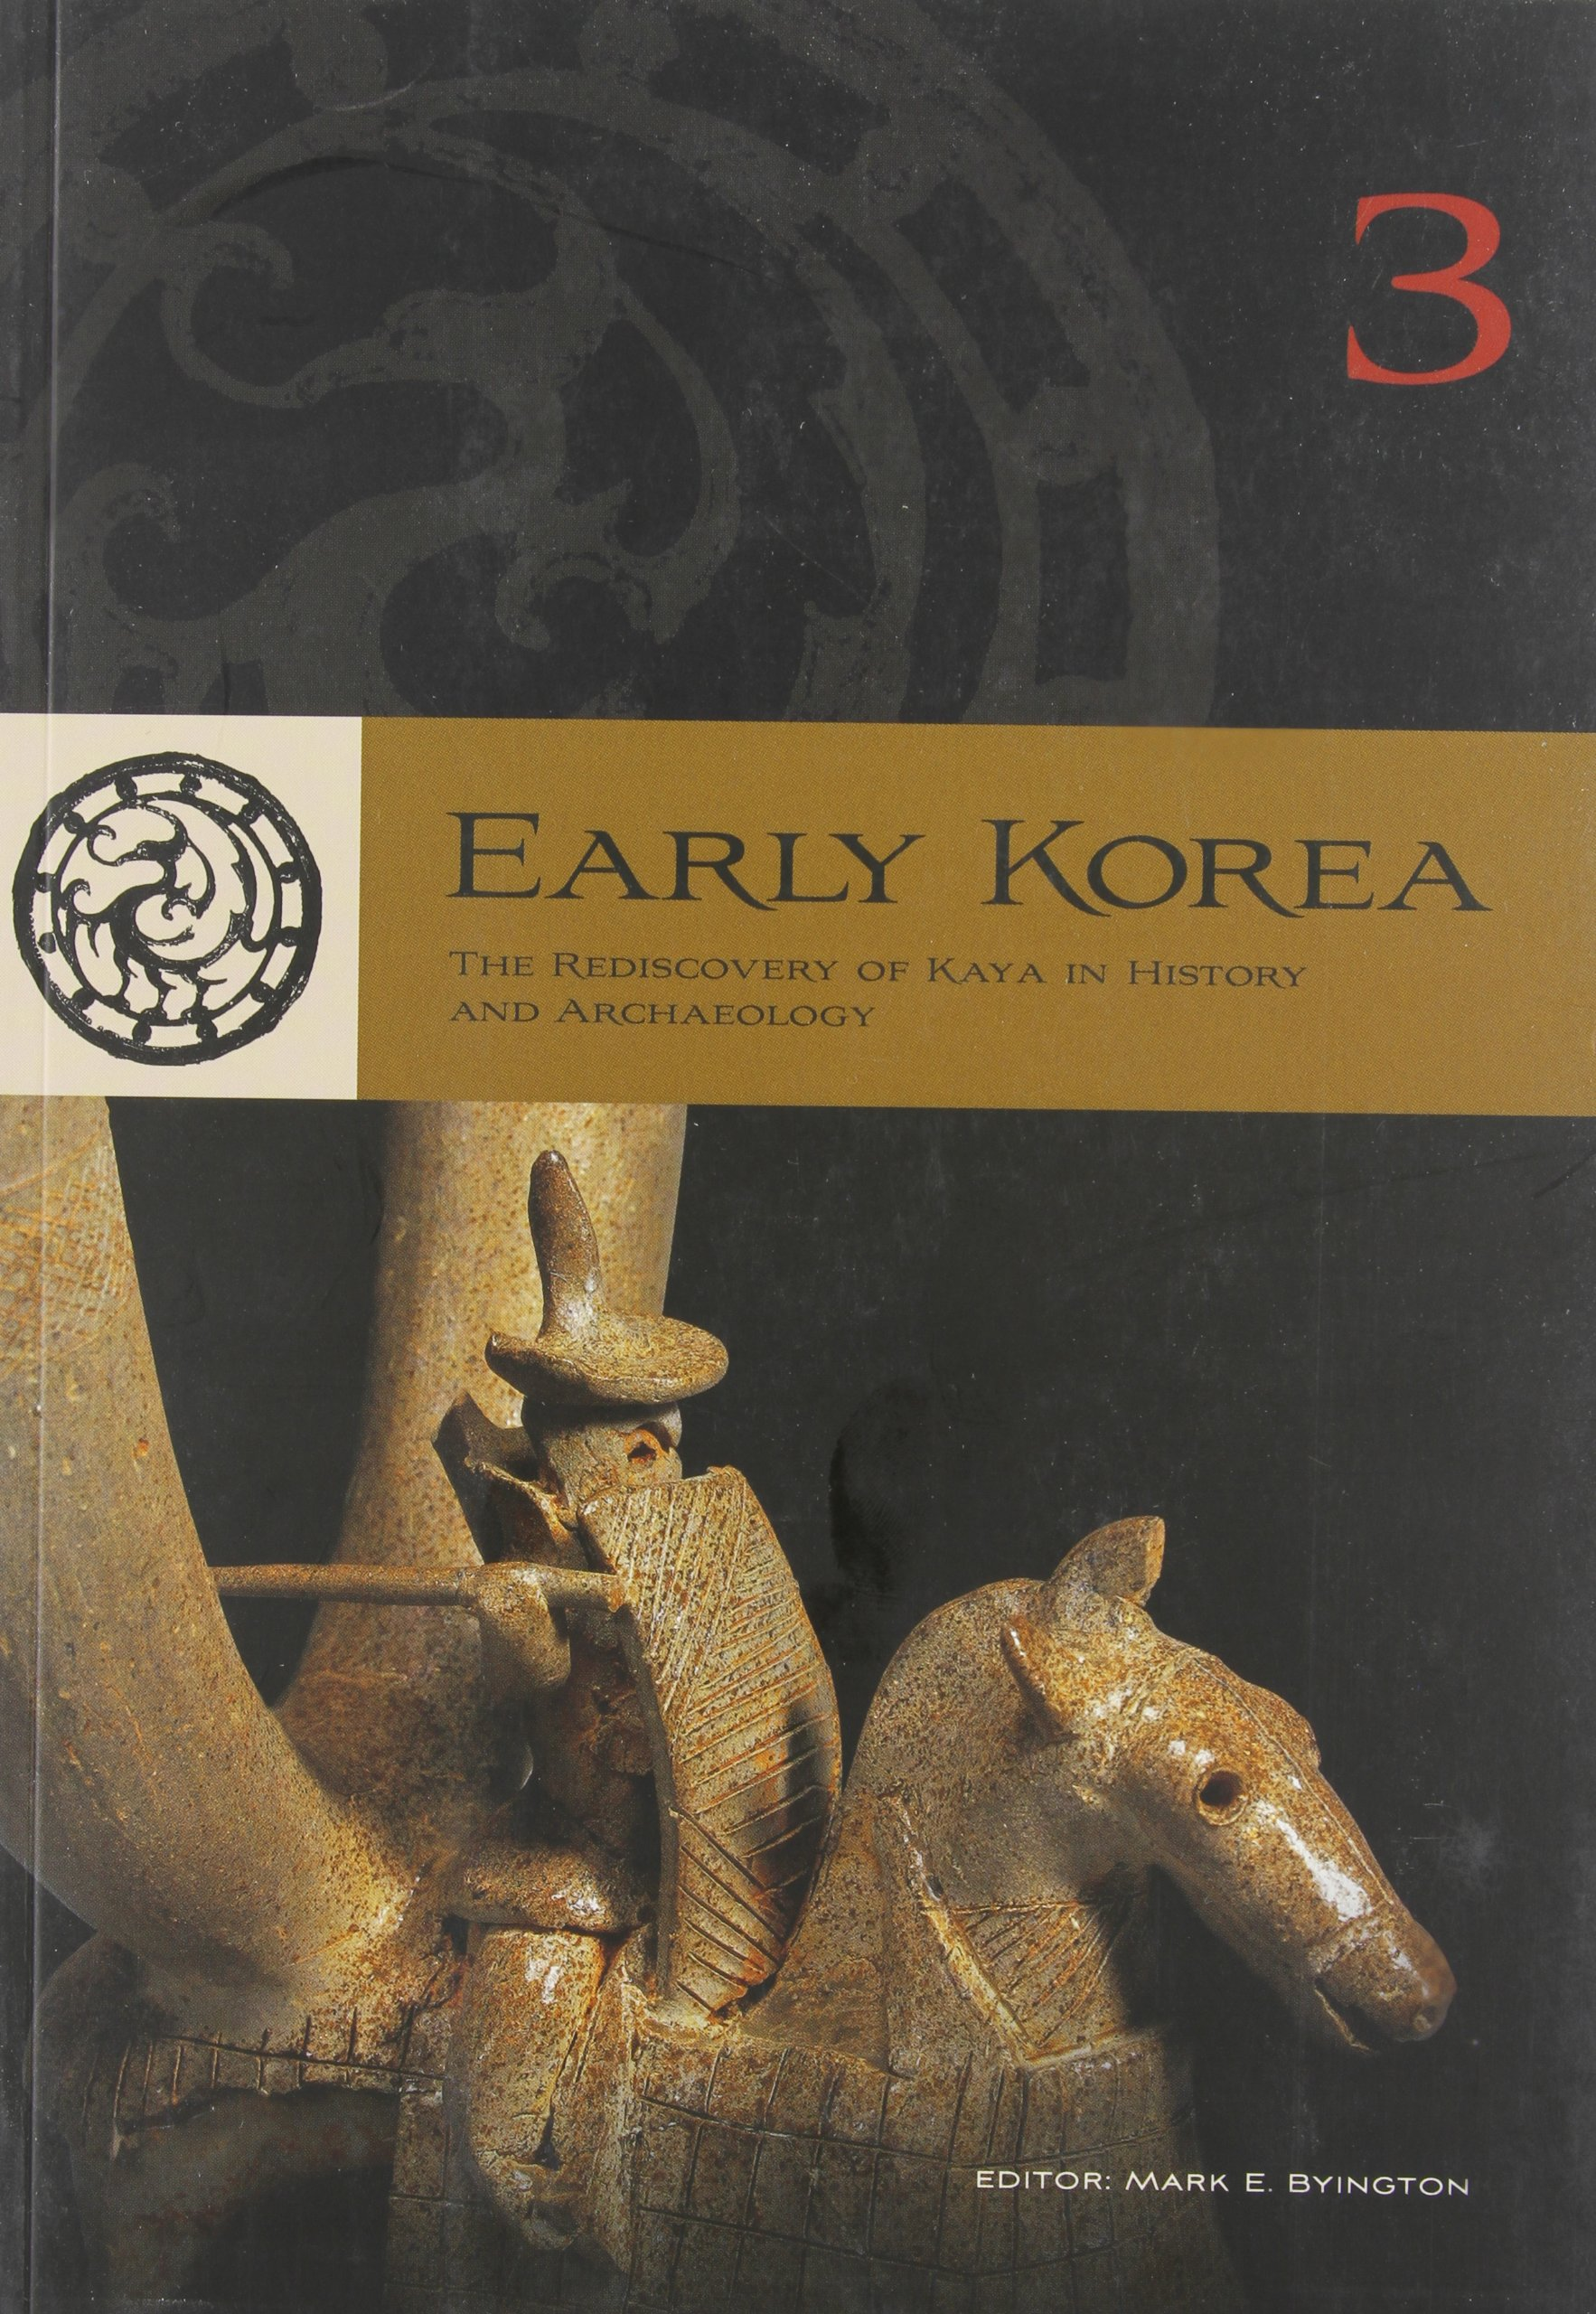 Early Korea: The Rediscovery of Kaya in History and Archaeology